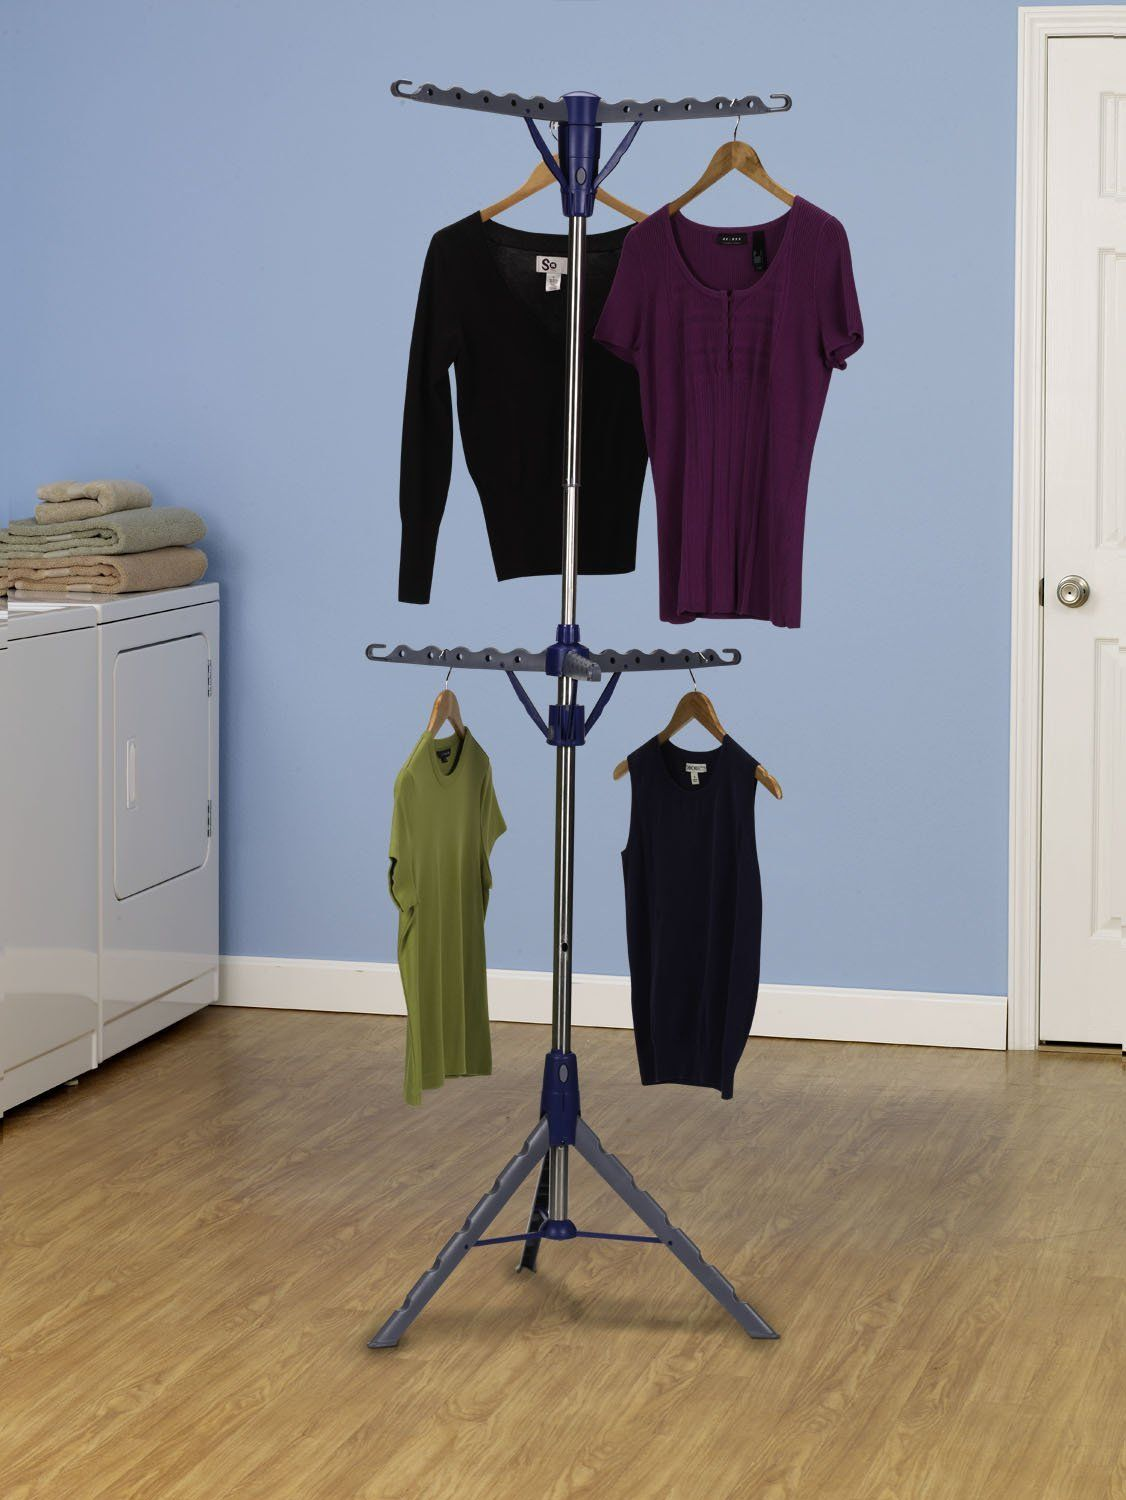 Portable Dress Room Amazoncom Household Essentials 2 Tier Tripod Air Dryer Clothes Drying Racks